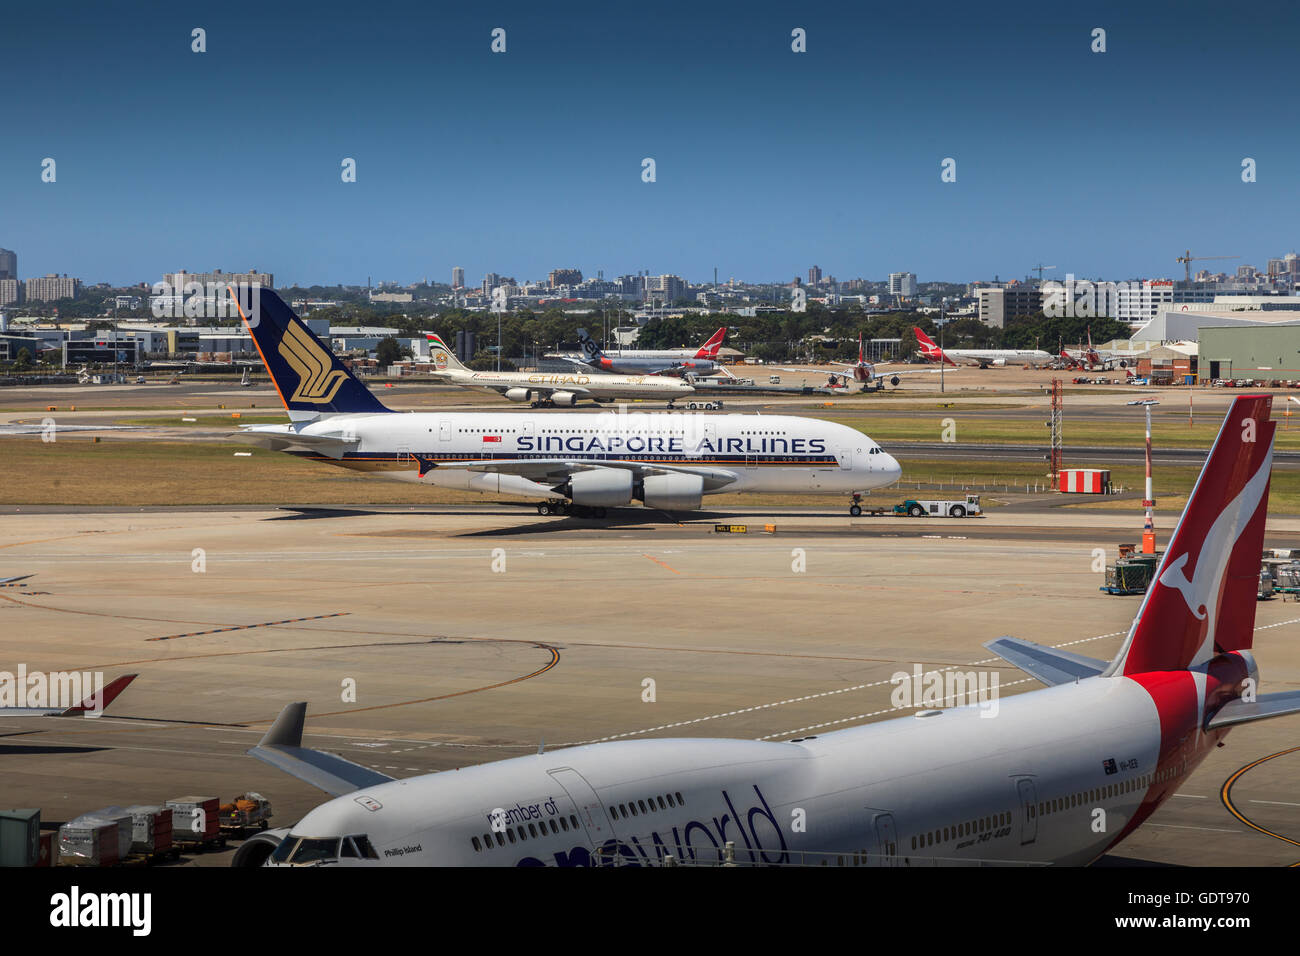 Singapore airlines airbus a380 with qantas boeing 747 at for Singapore airlines sito italiano